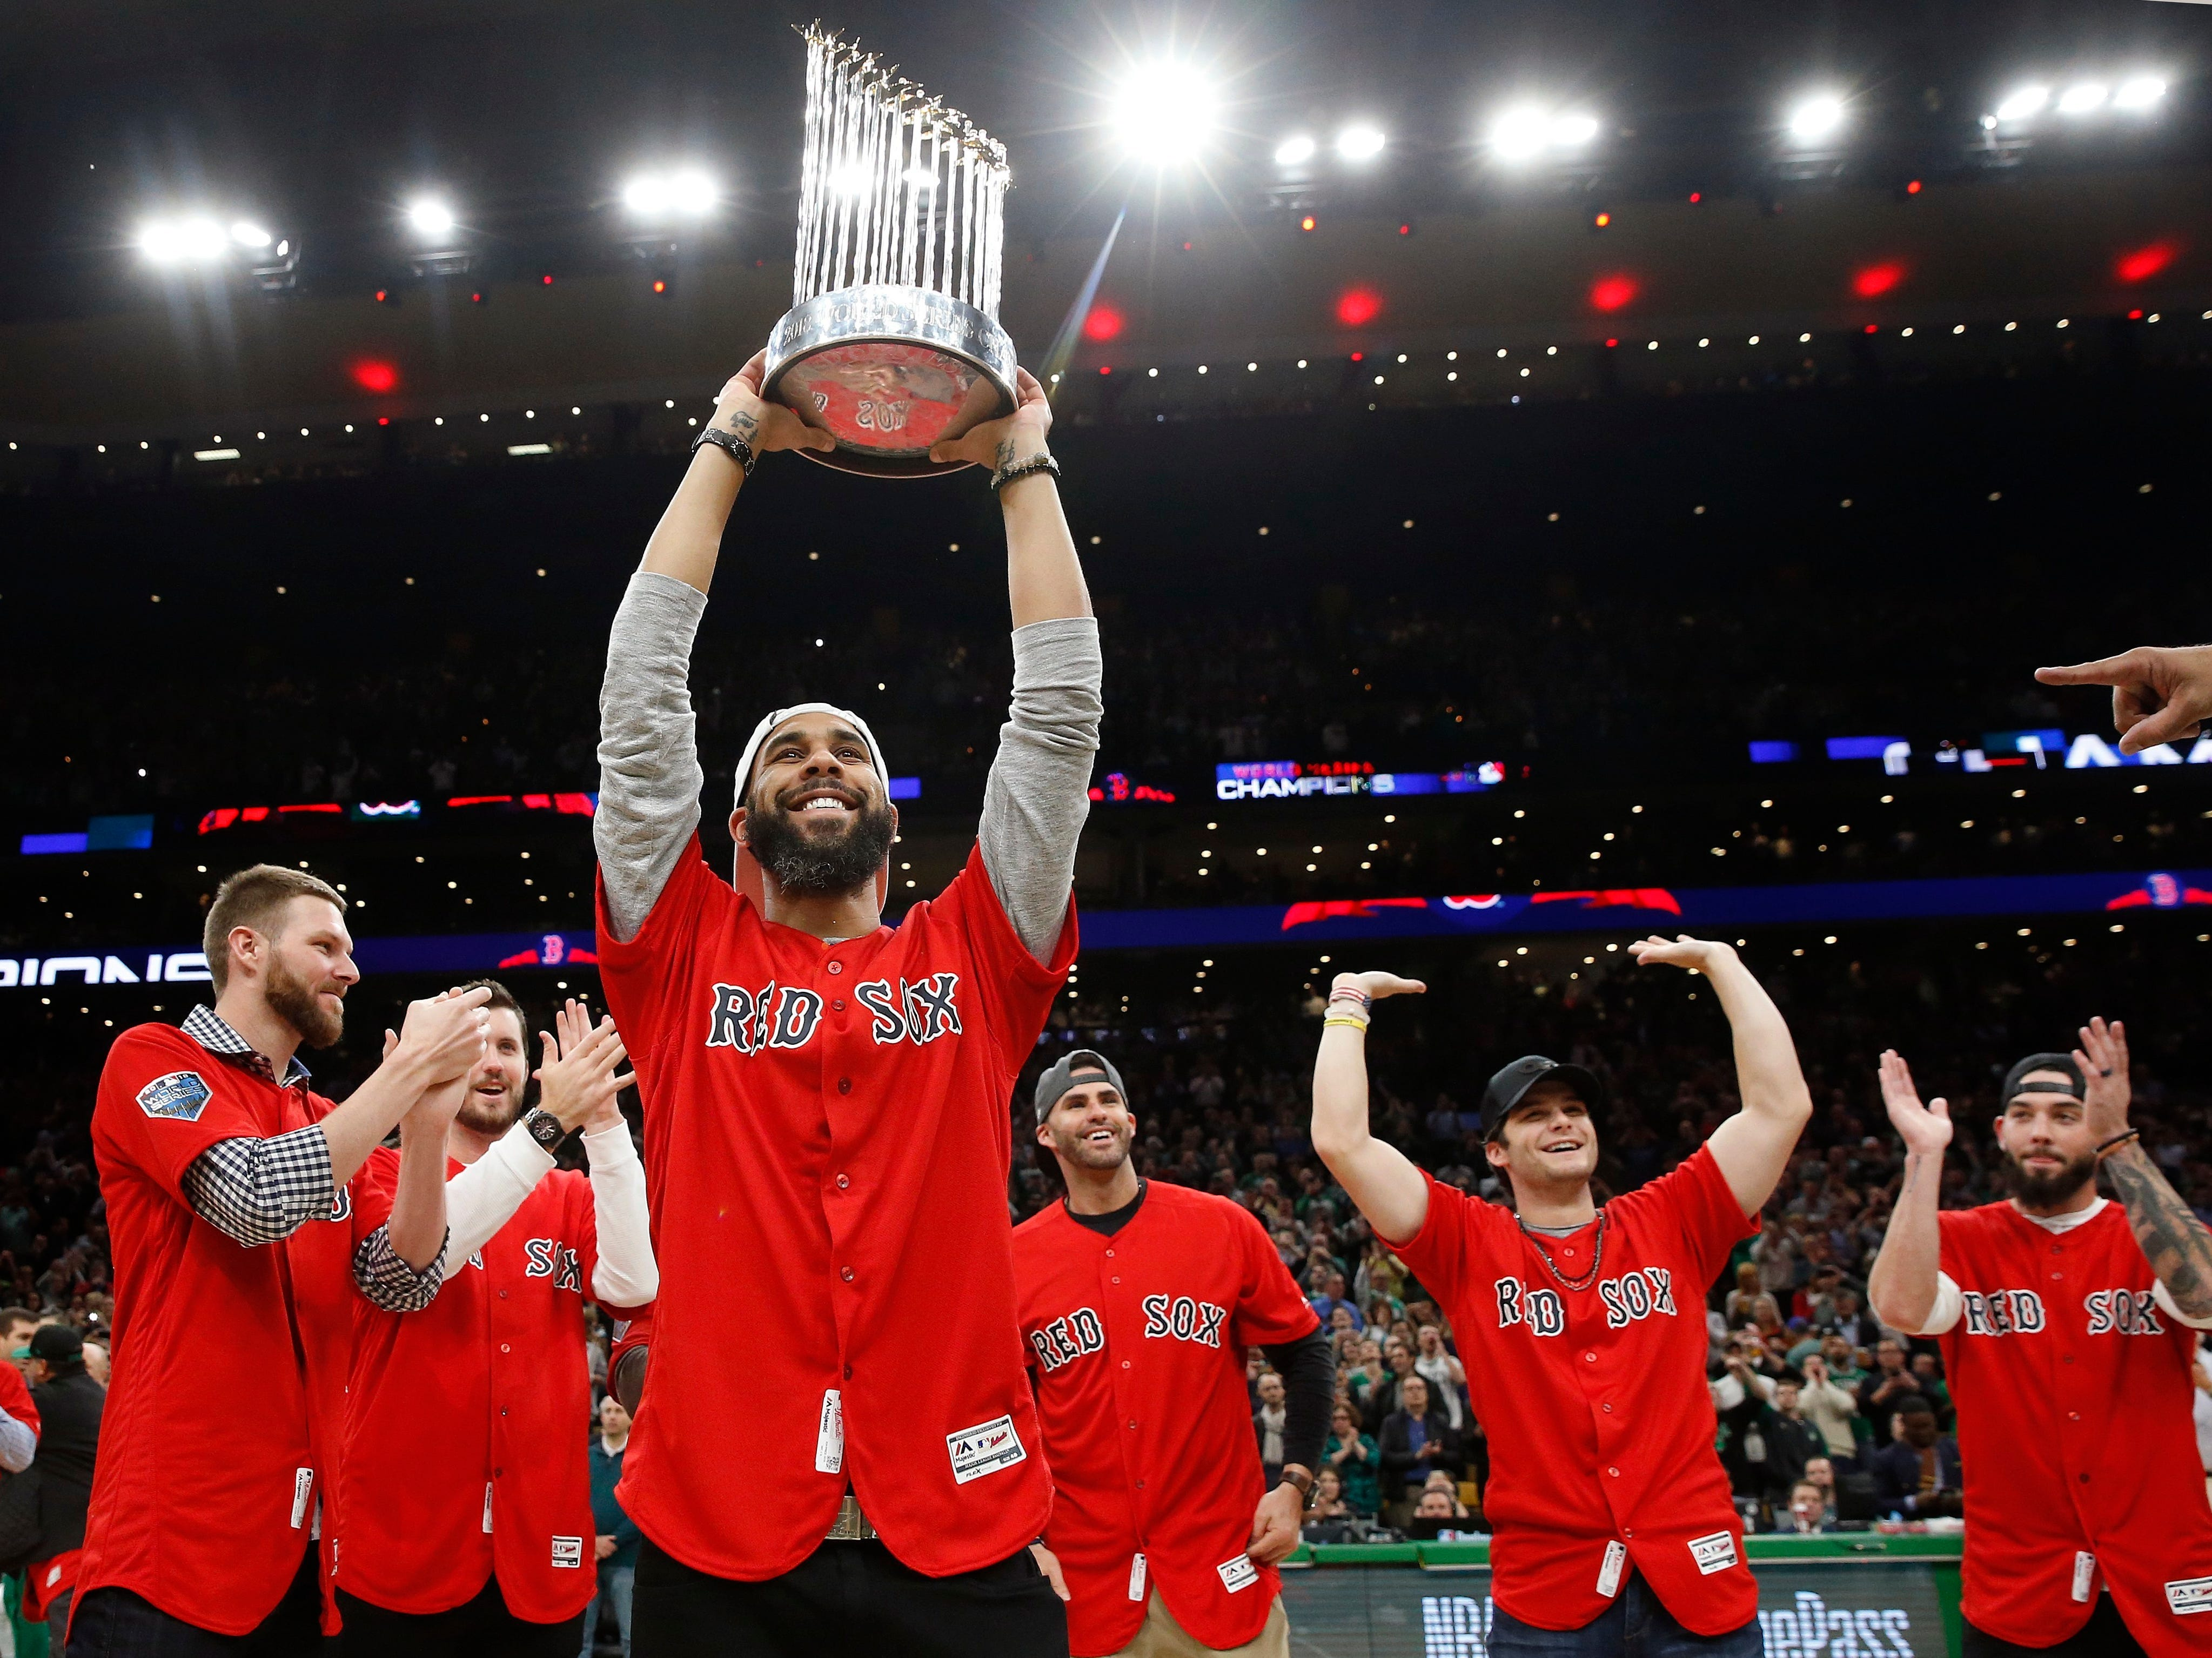 Boston Red Sox's David Price holds up the World Series trophy with teammates during the game between the Boston Celtics and the Milwaukee Bucks in Boston on Nov. 1, 2018.